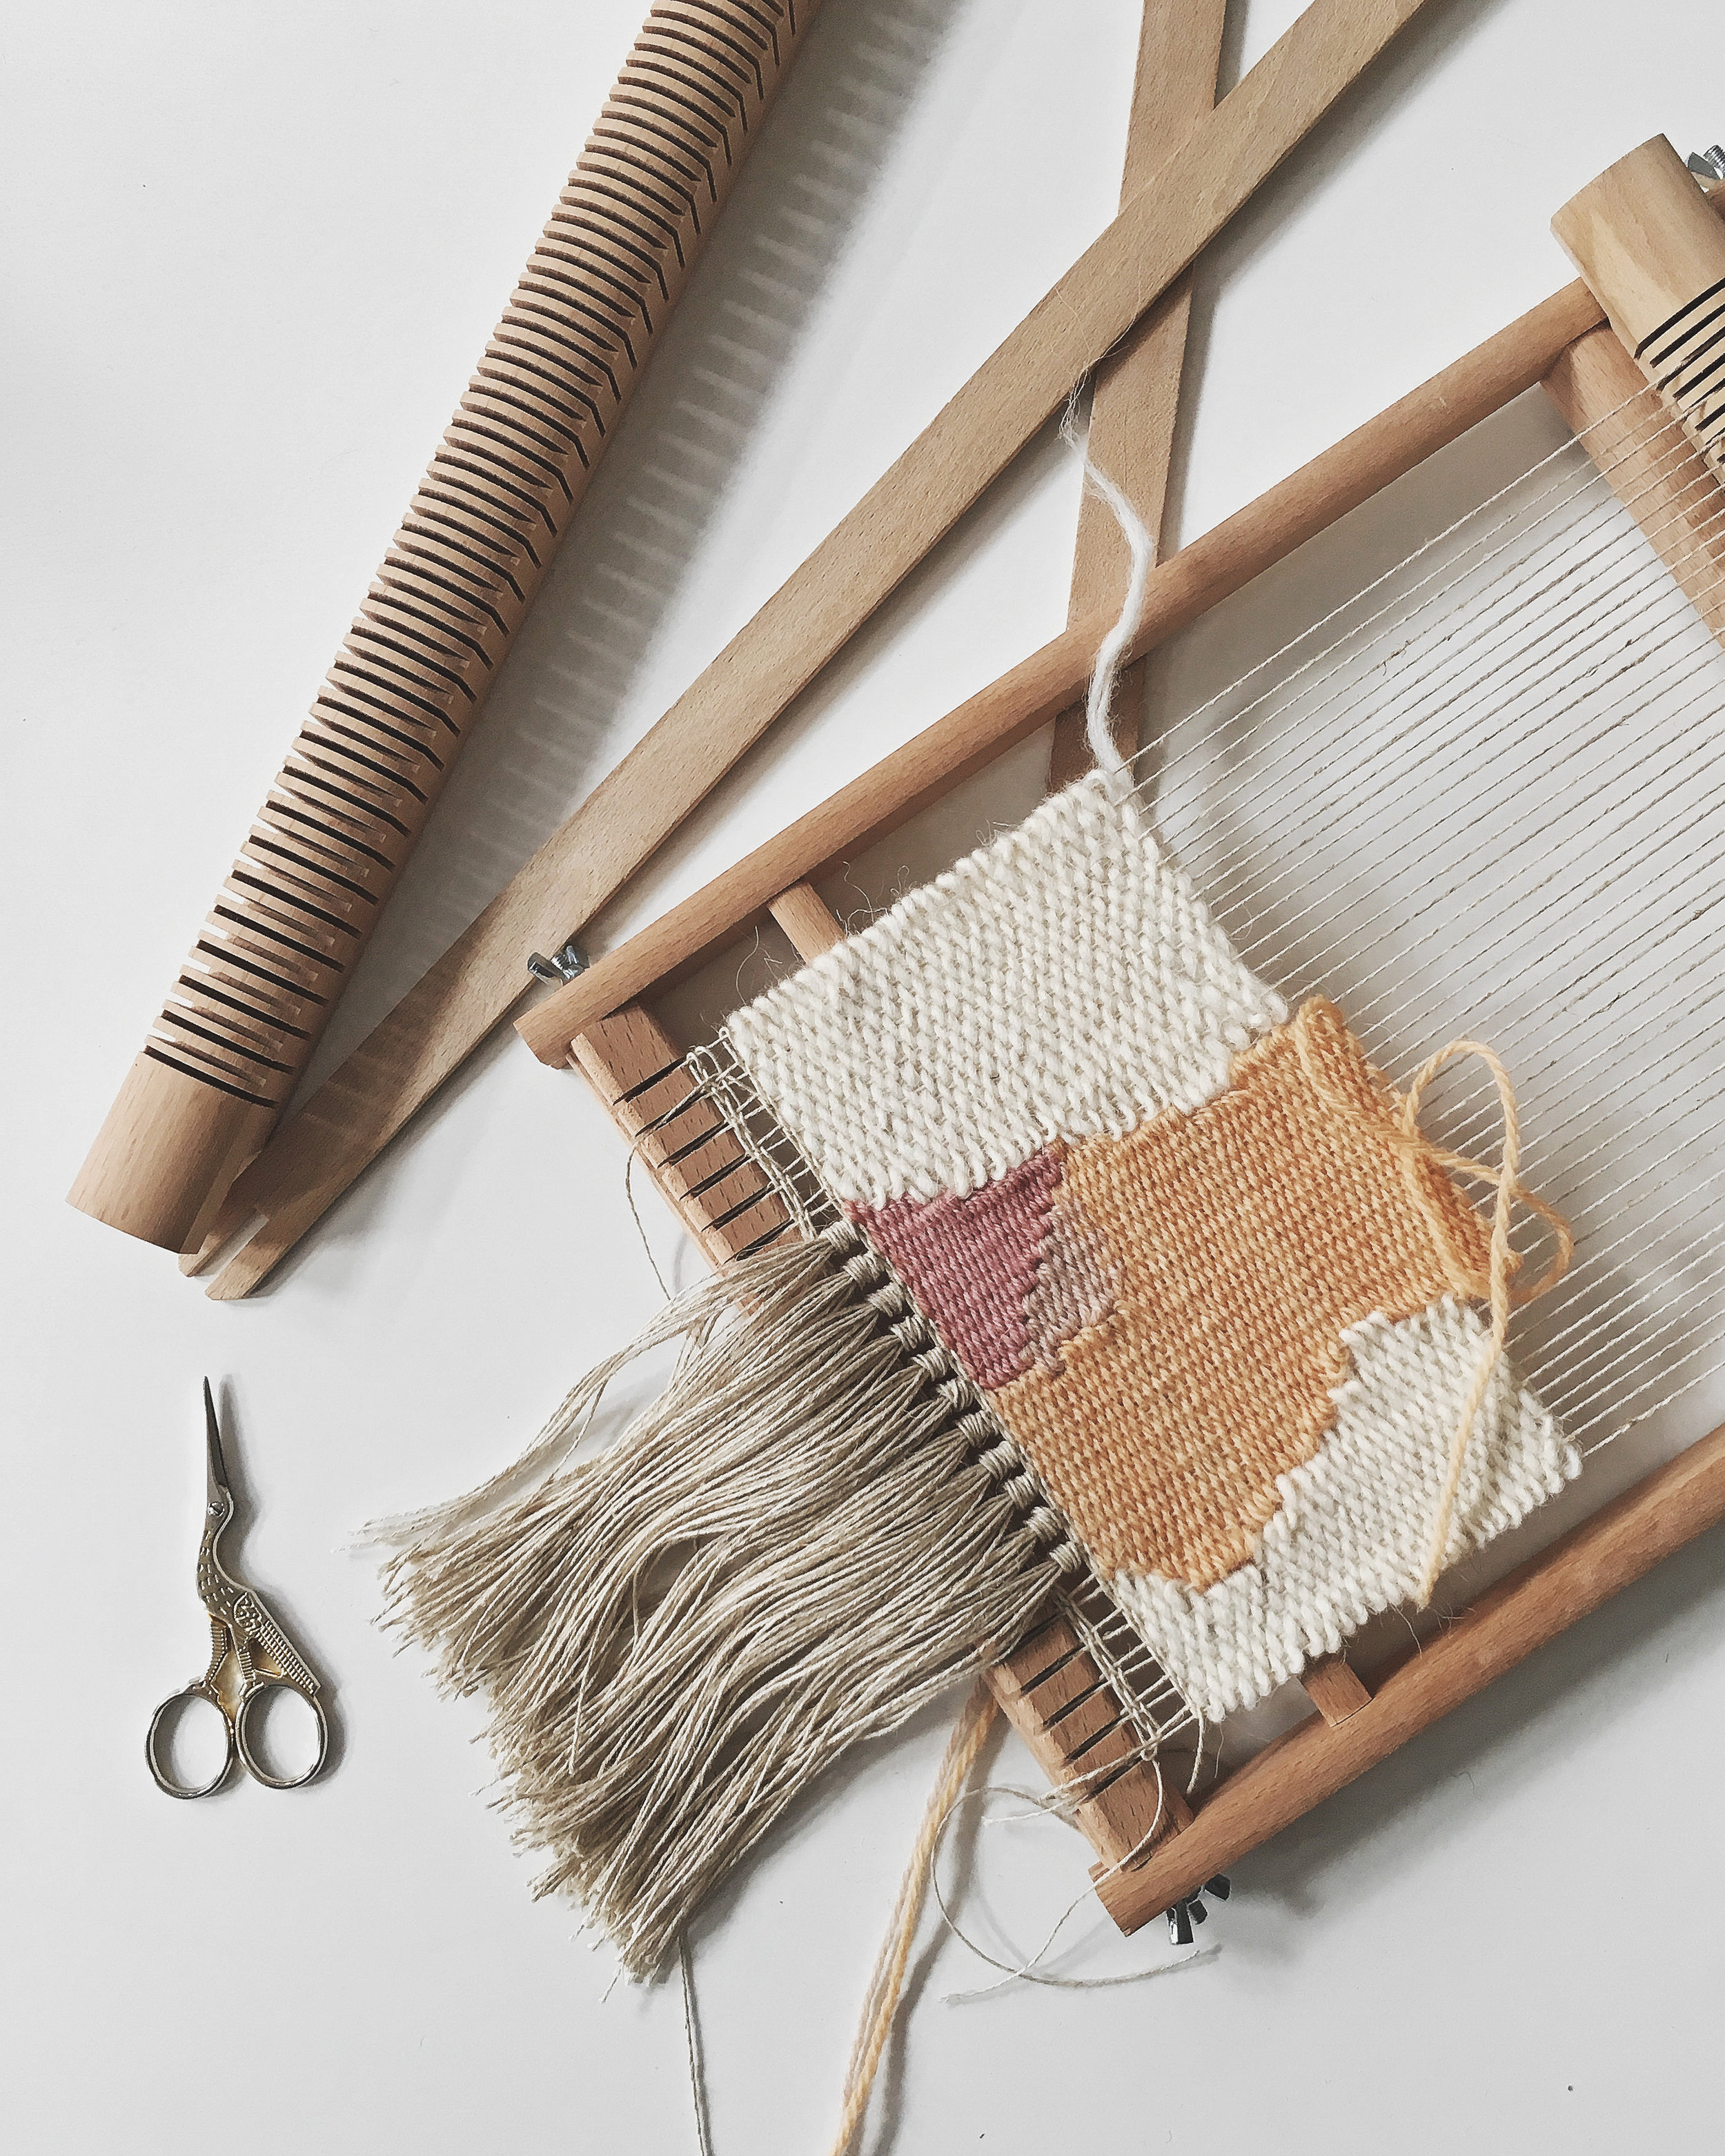 Handwoven tapestry on the wooden loom frame - tips and tutorials linked #weaving #tapestry #wallhanging #loom #tutorial